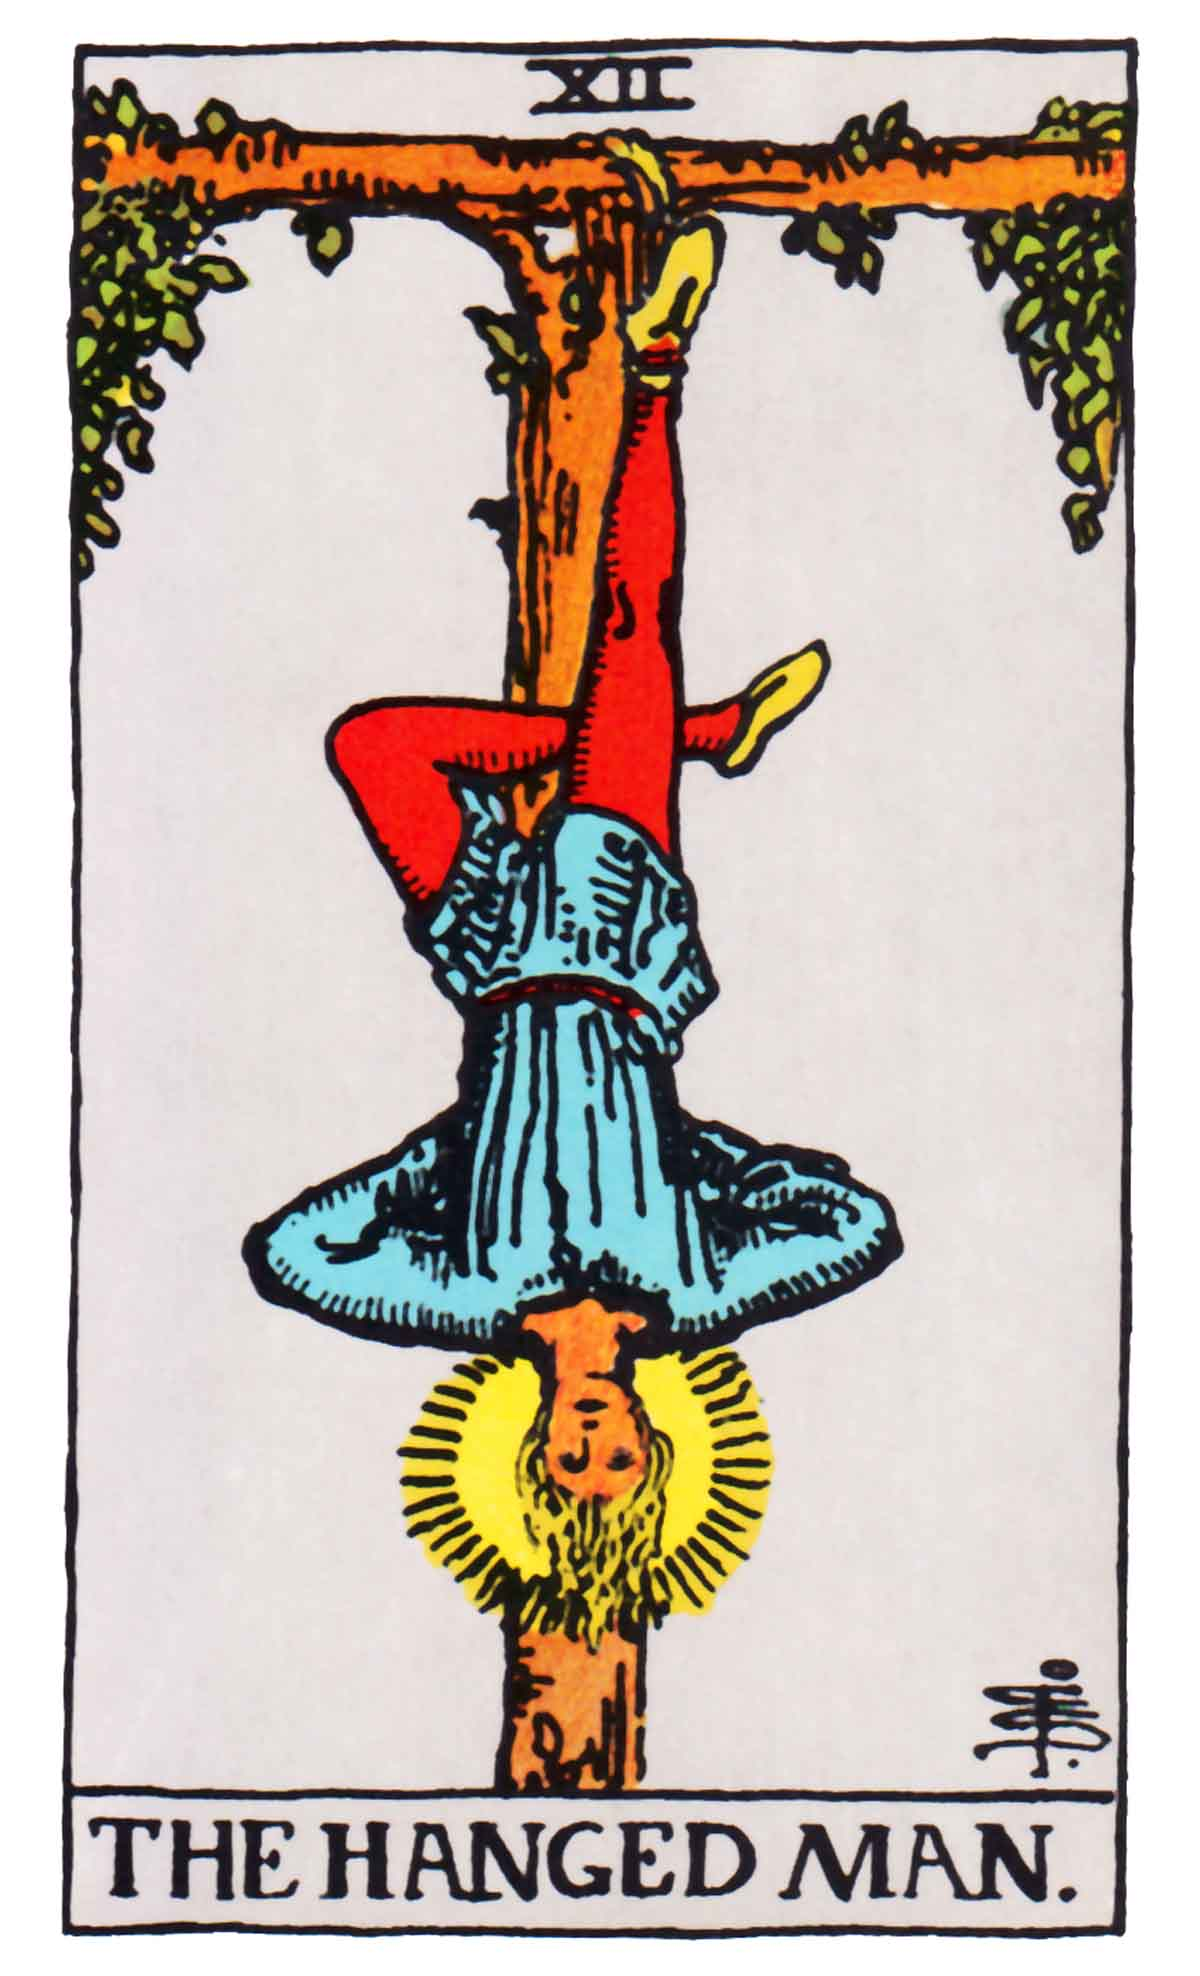 The Hanged Man Tarot Card Meaning In Readings: Sacrifice